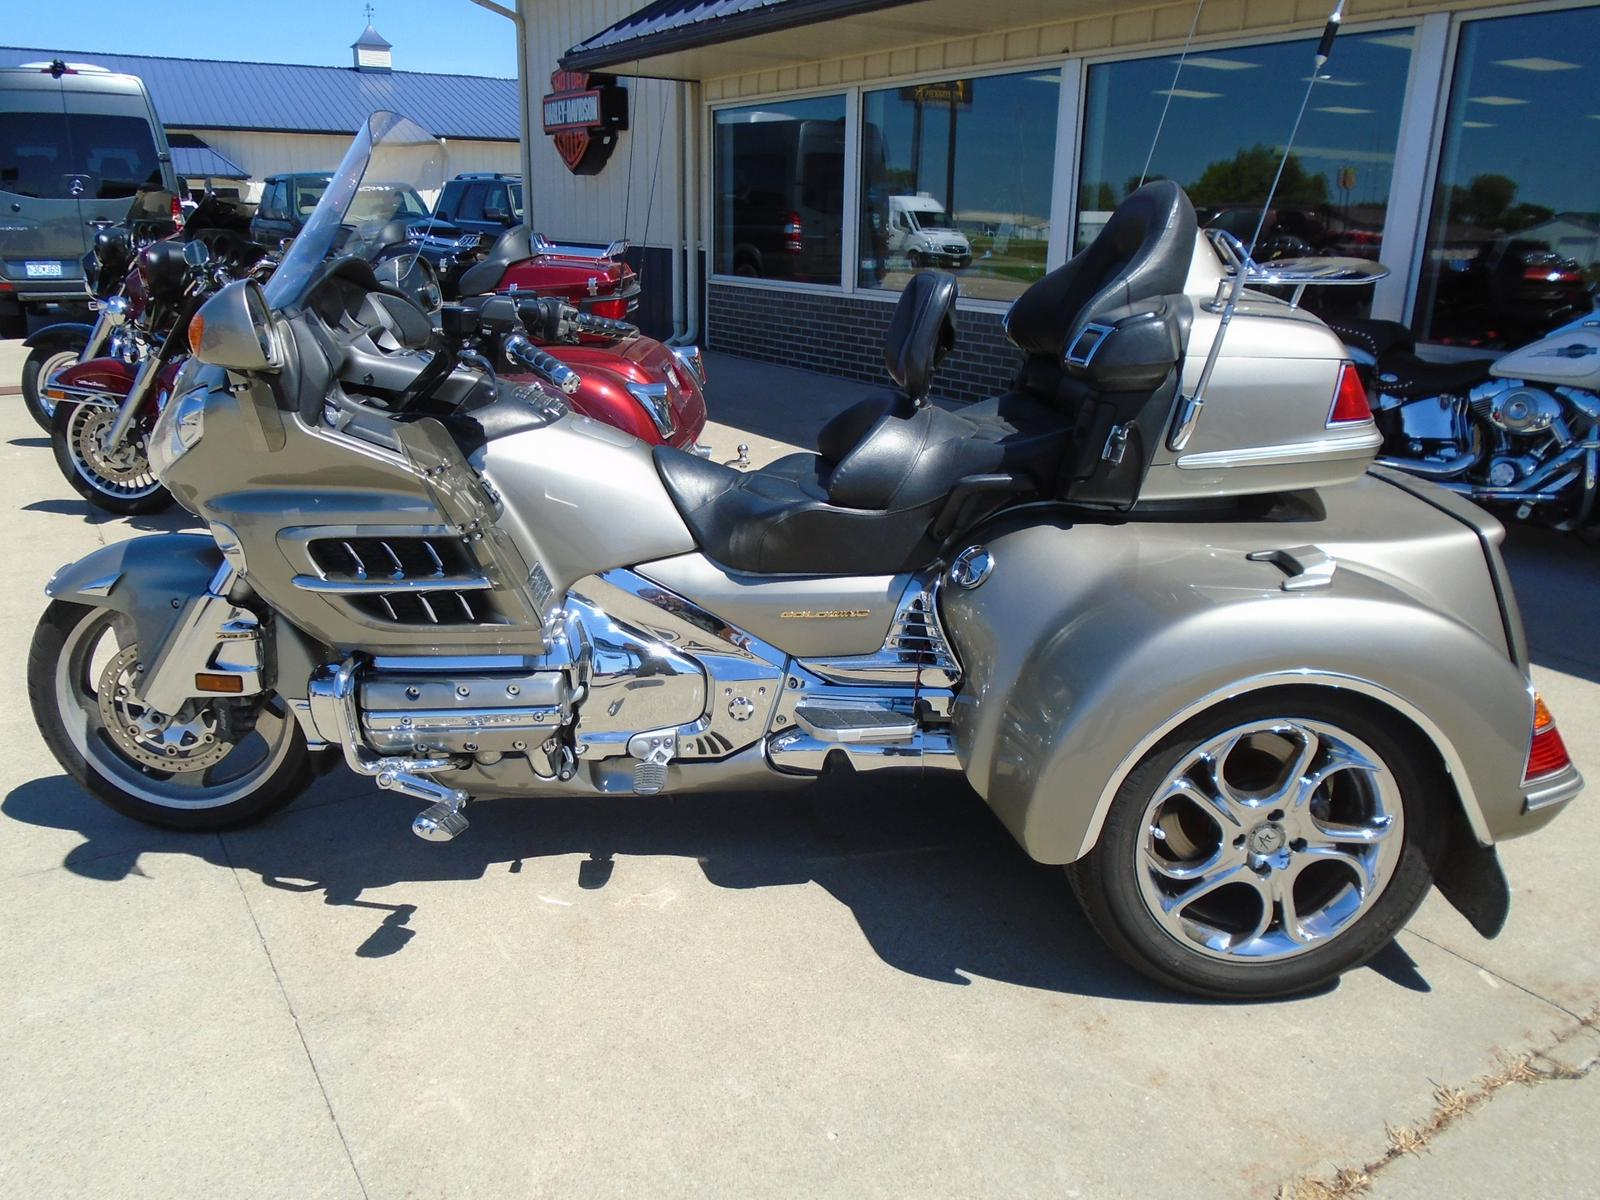 2002 Road Smith GL1800, motorcycle listing